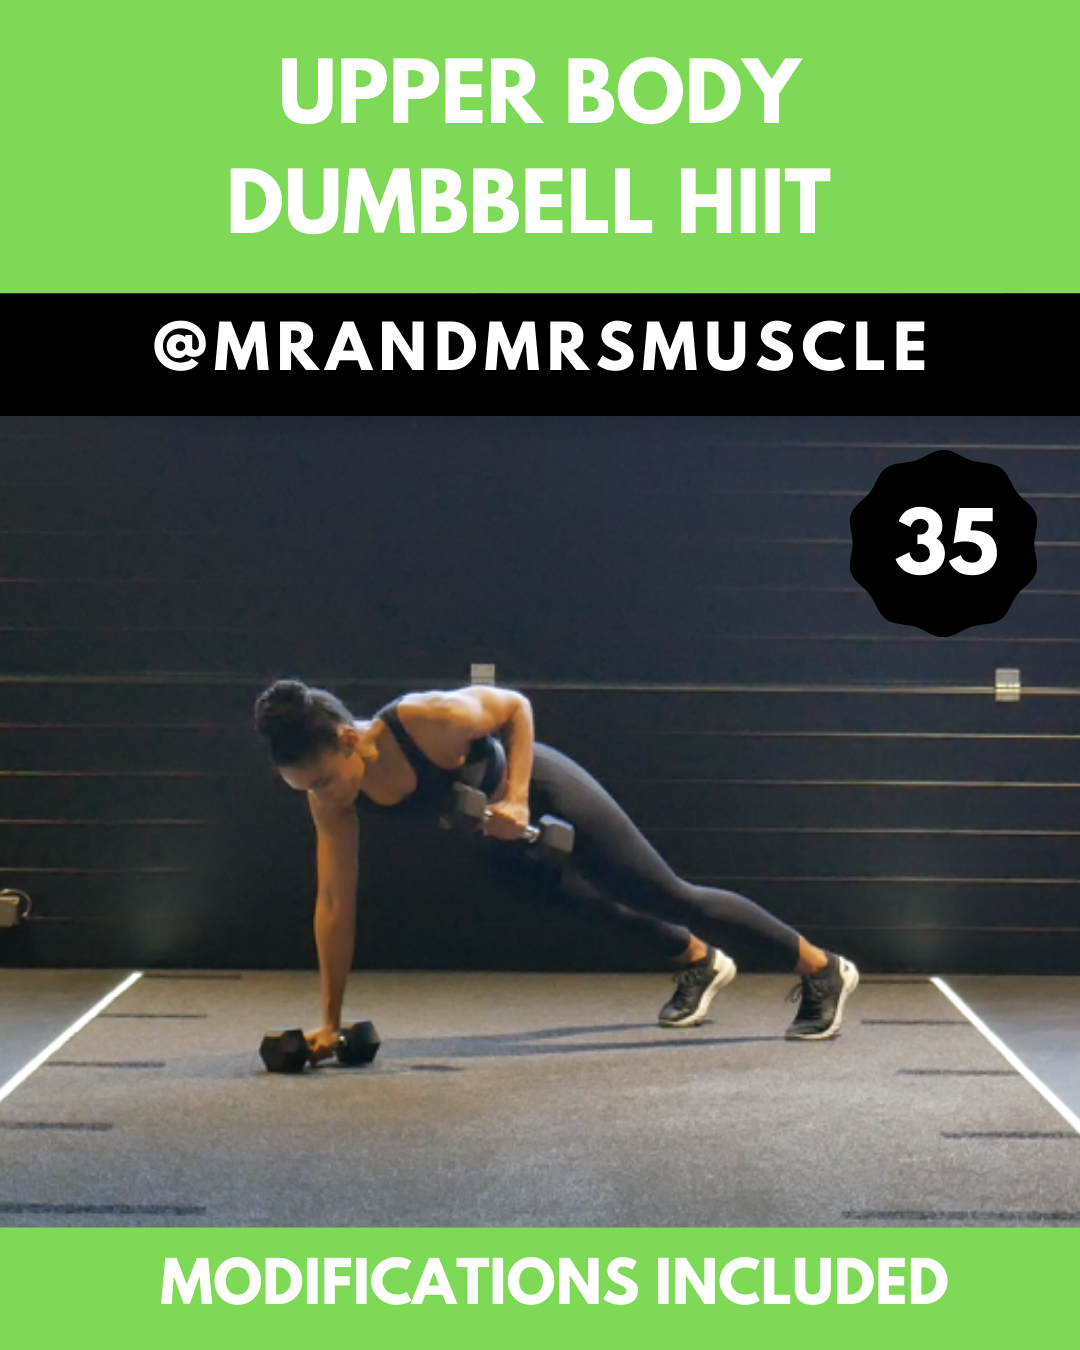 Upper Body Dumbbell HIIT Workout - MrandMrsMuscle - #Body #Dumbbell #fitness #HIIT #MrandMrsMuscle #...